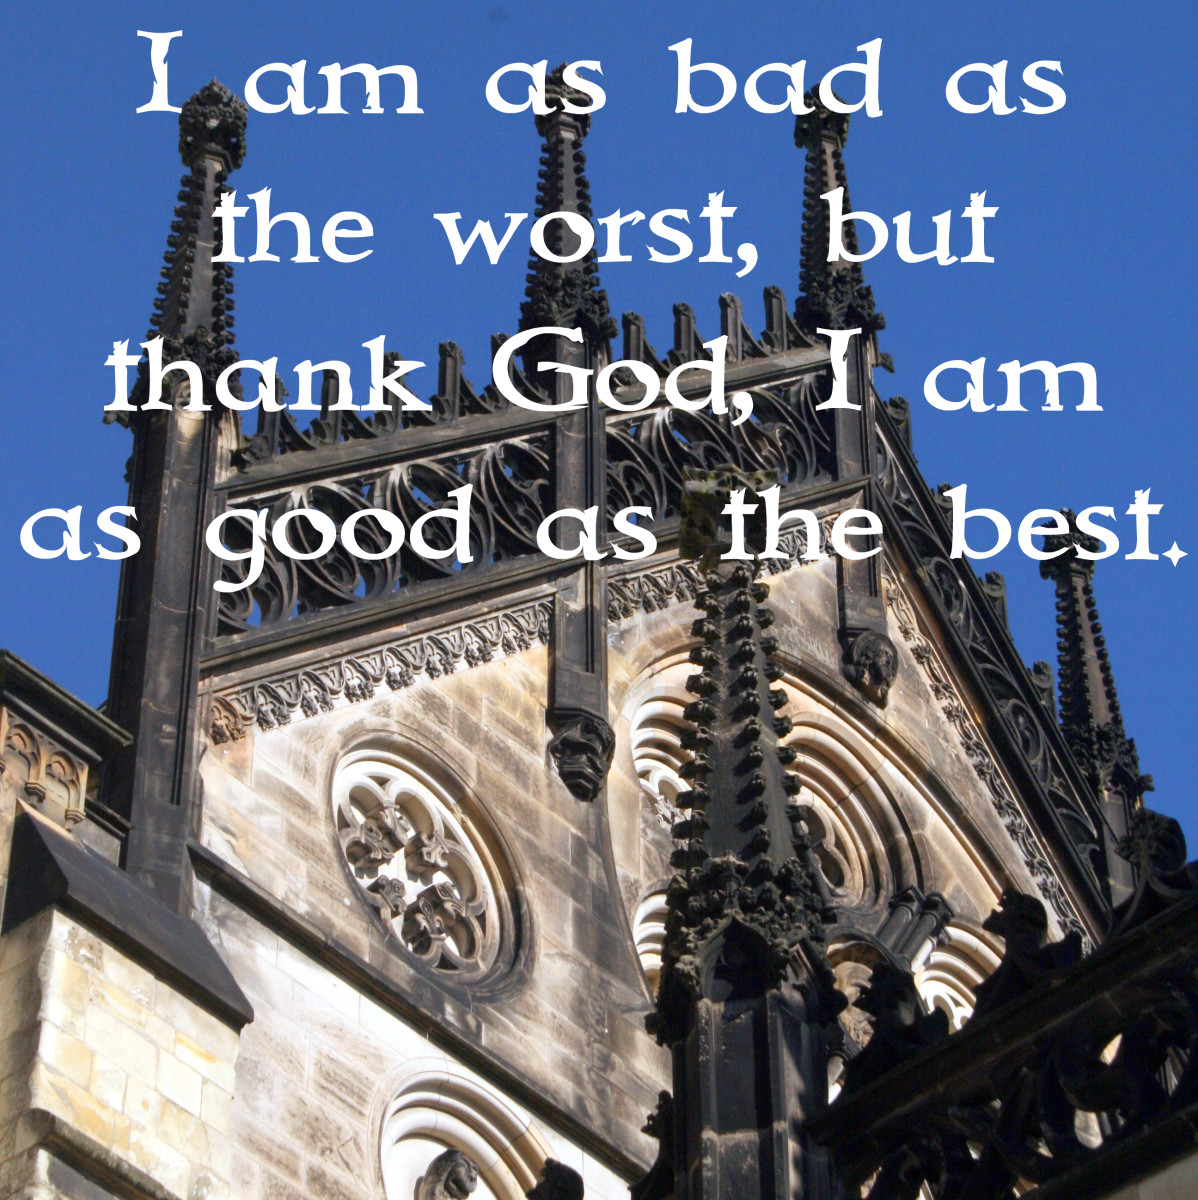 """I am as bad as the worst, but thank God, I am as good as the best."" - Walt Whitman, American poet"